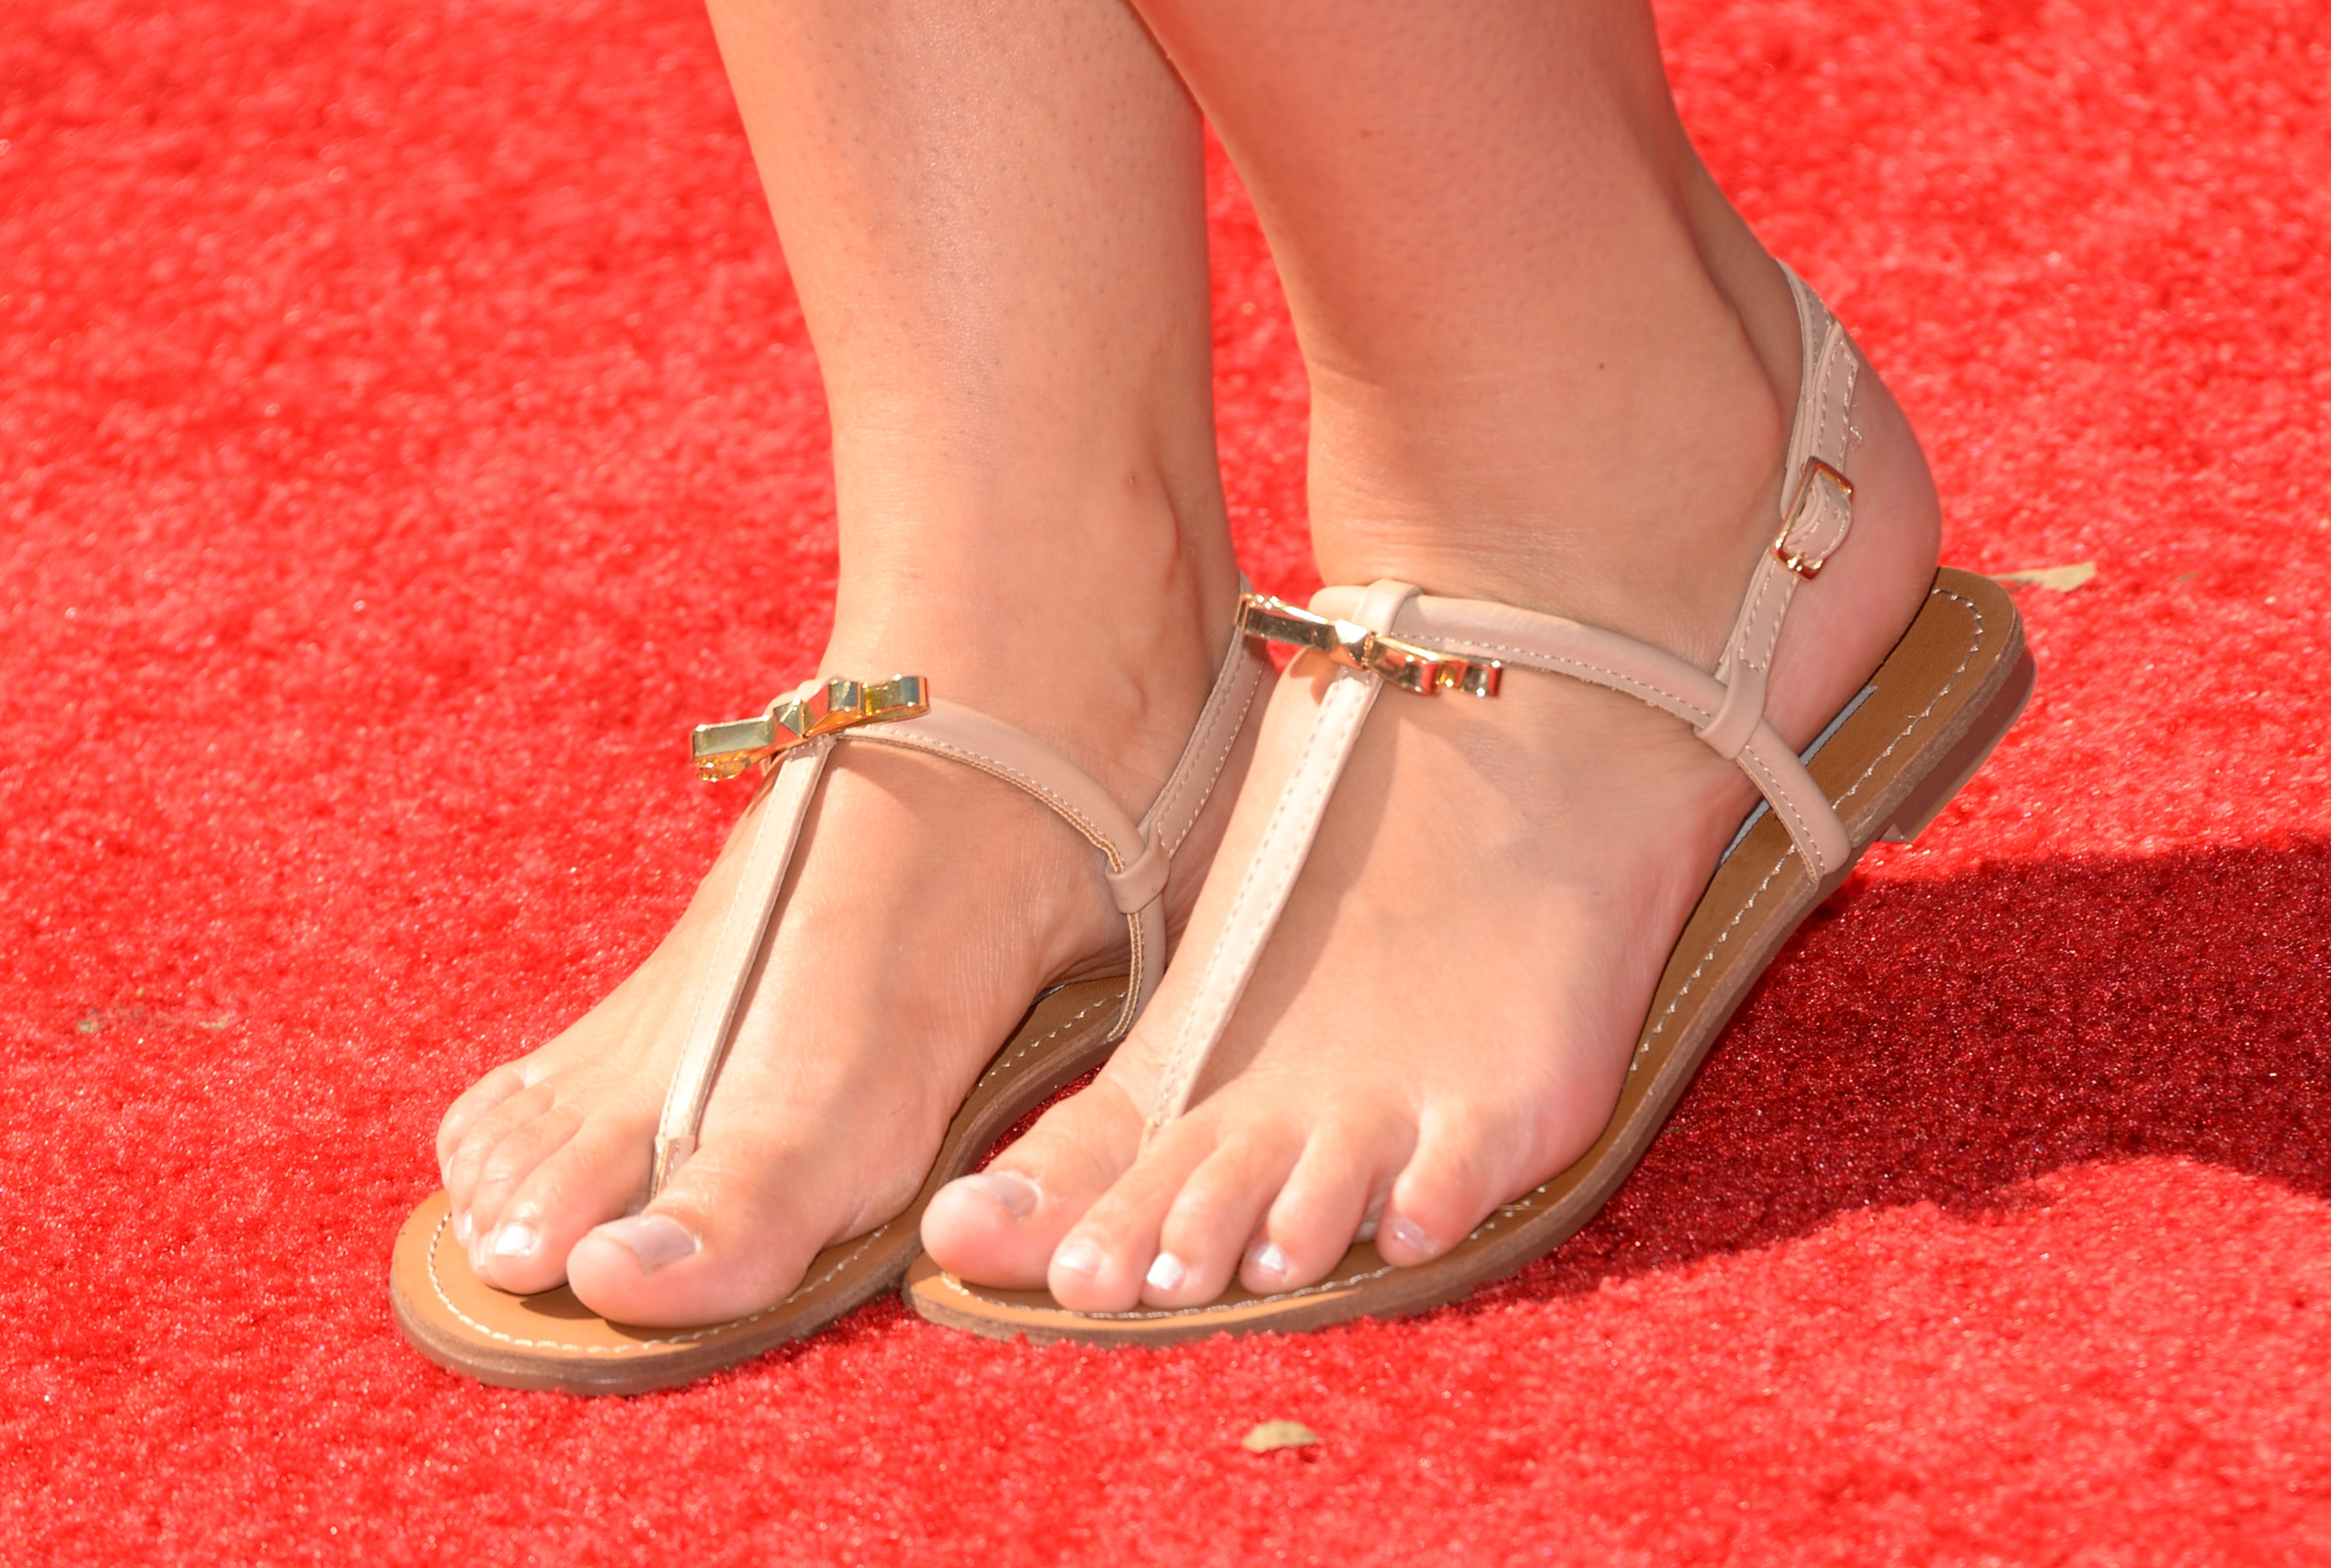 f54917993a2b 8 Ways to Make Sandals More Comfortable